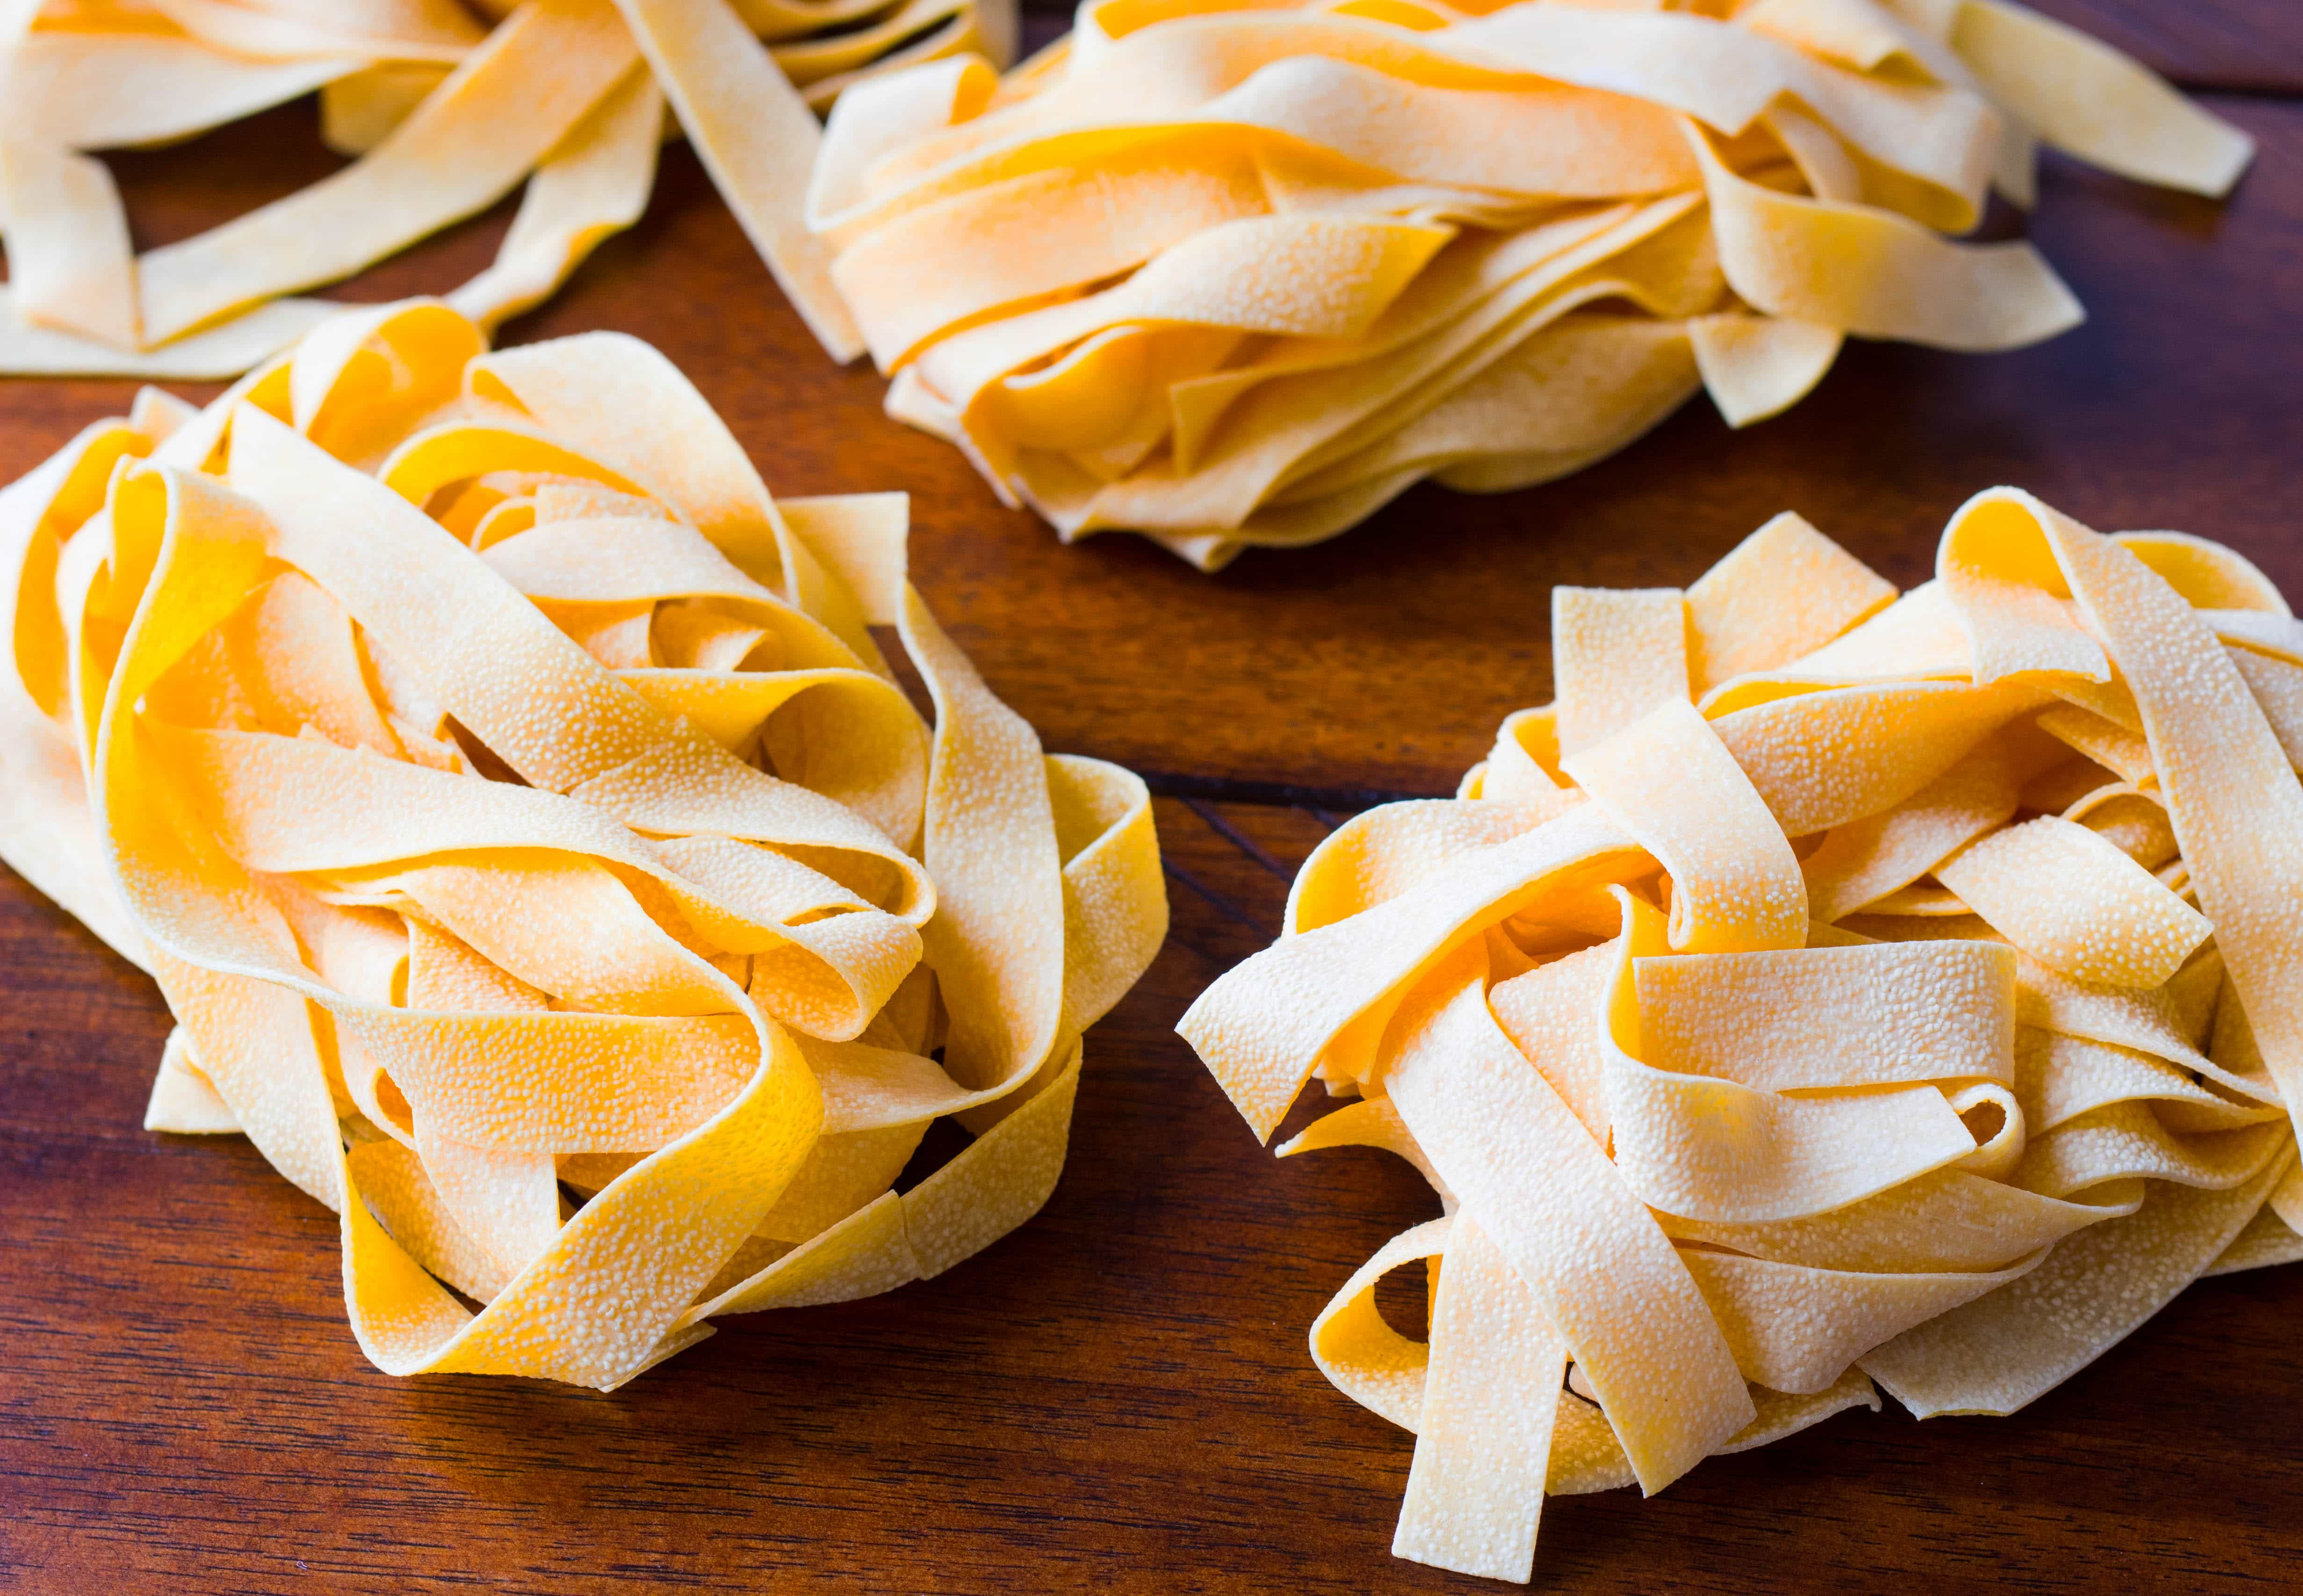 Pappardelle pasta